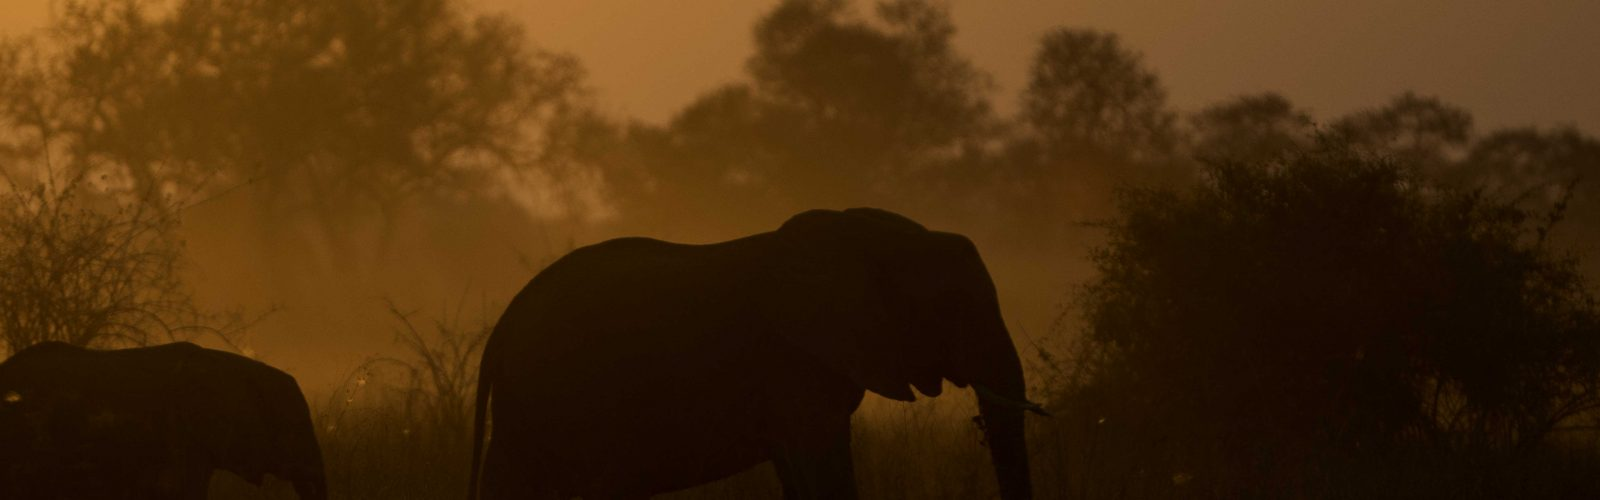 Cropped image of two elephants photographed at sunset